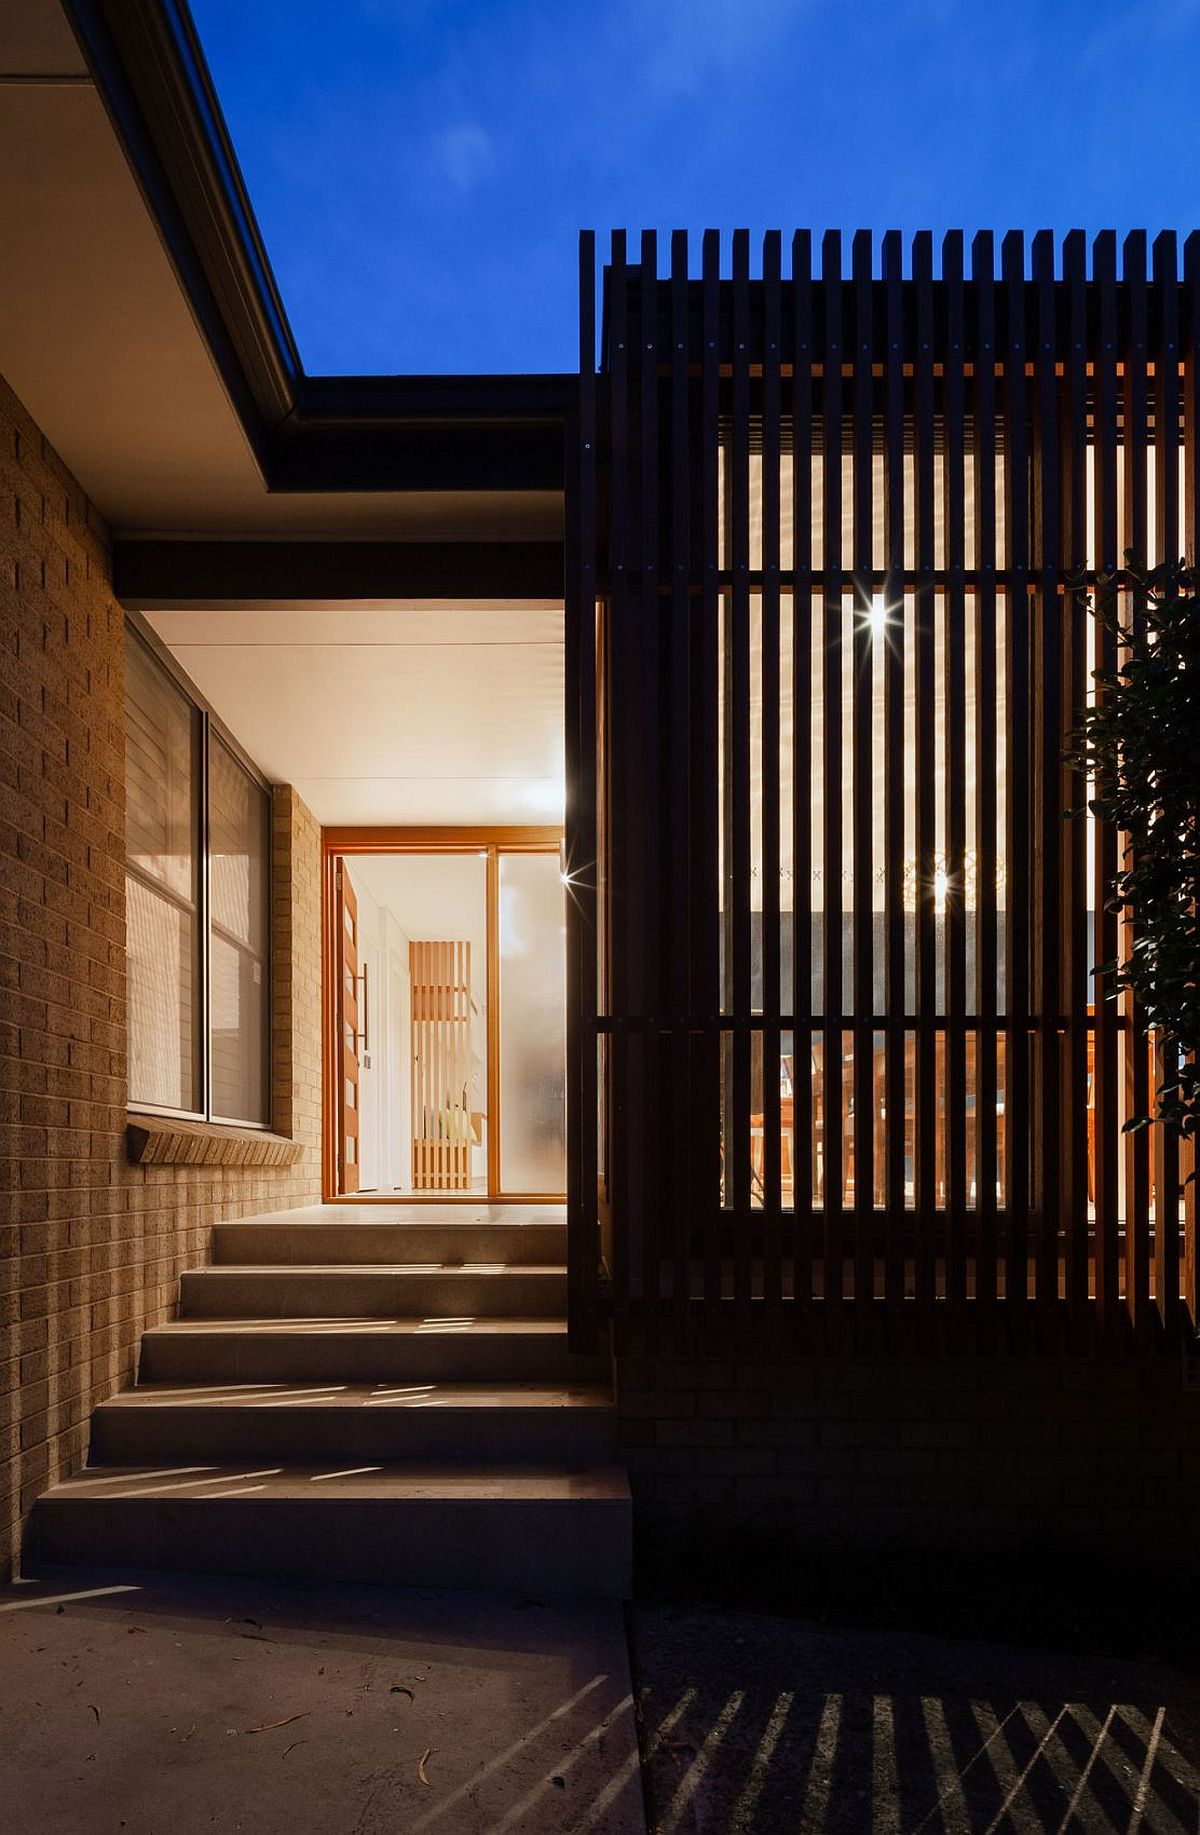 Slated timber gives the home a cool visual even after sunset